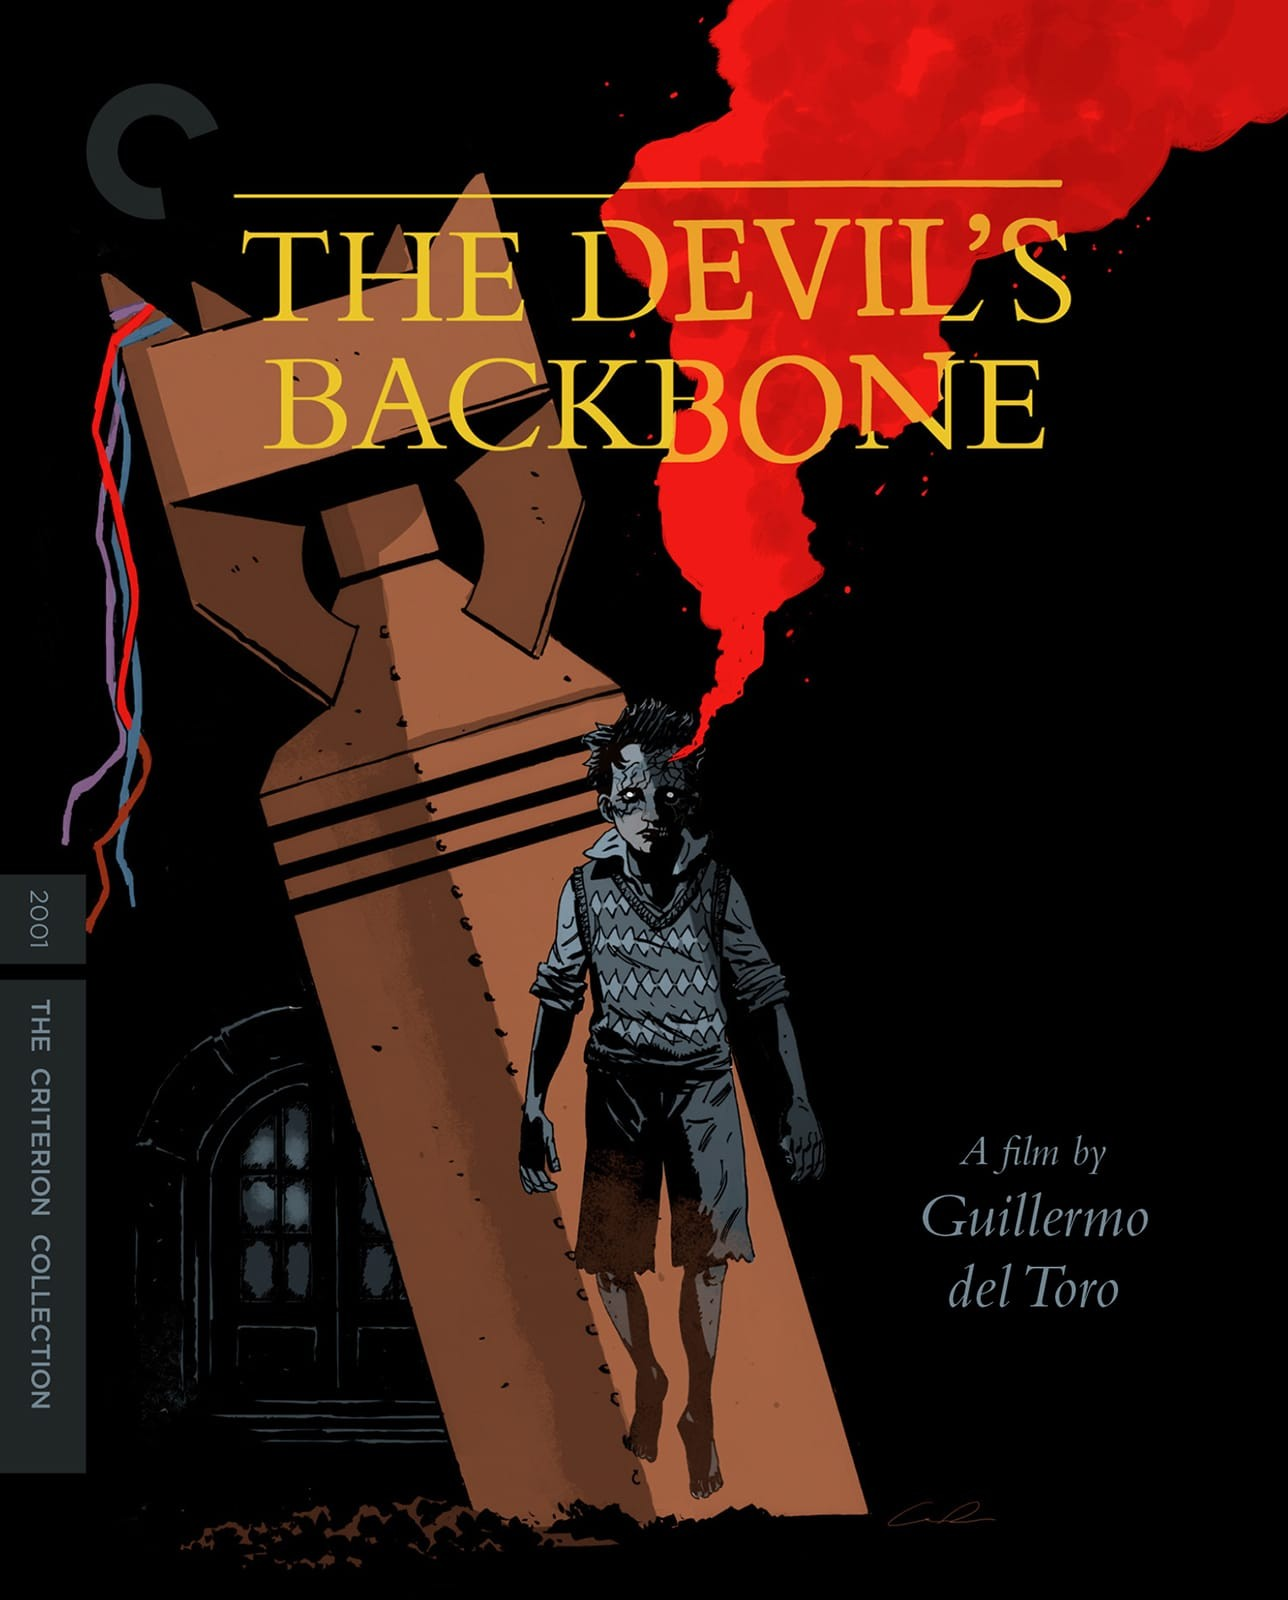 the devils double english movie free download